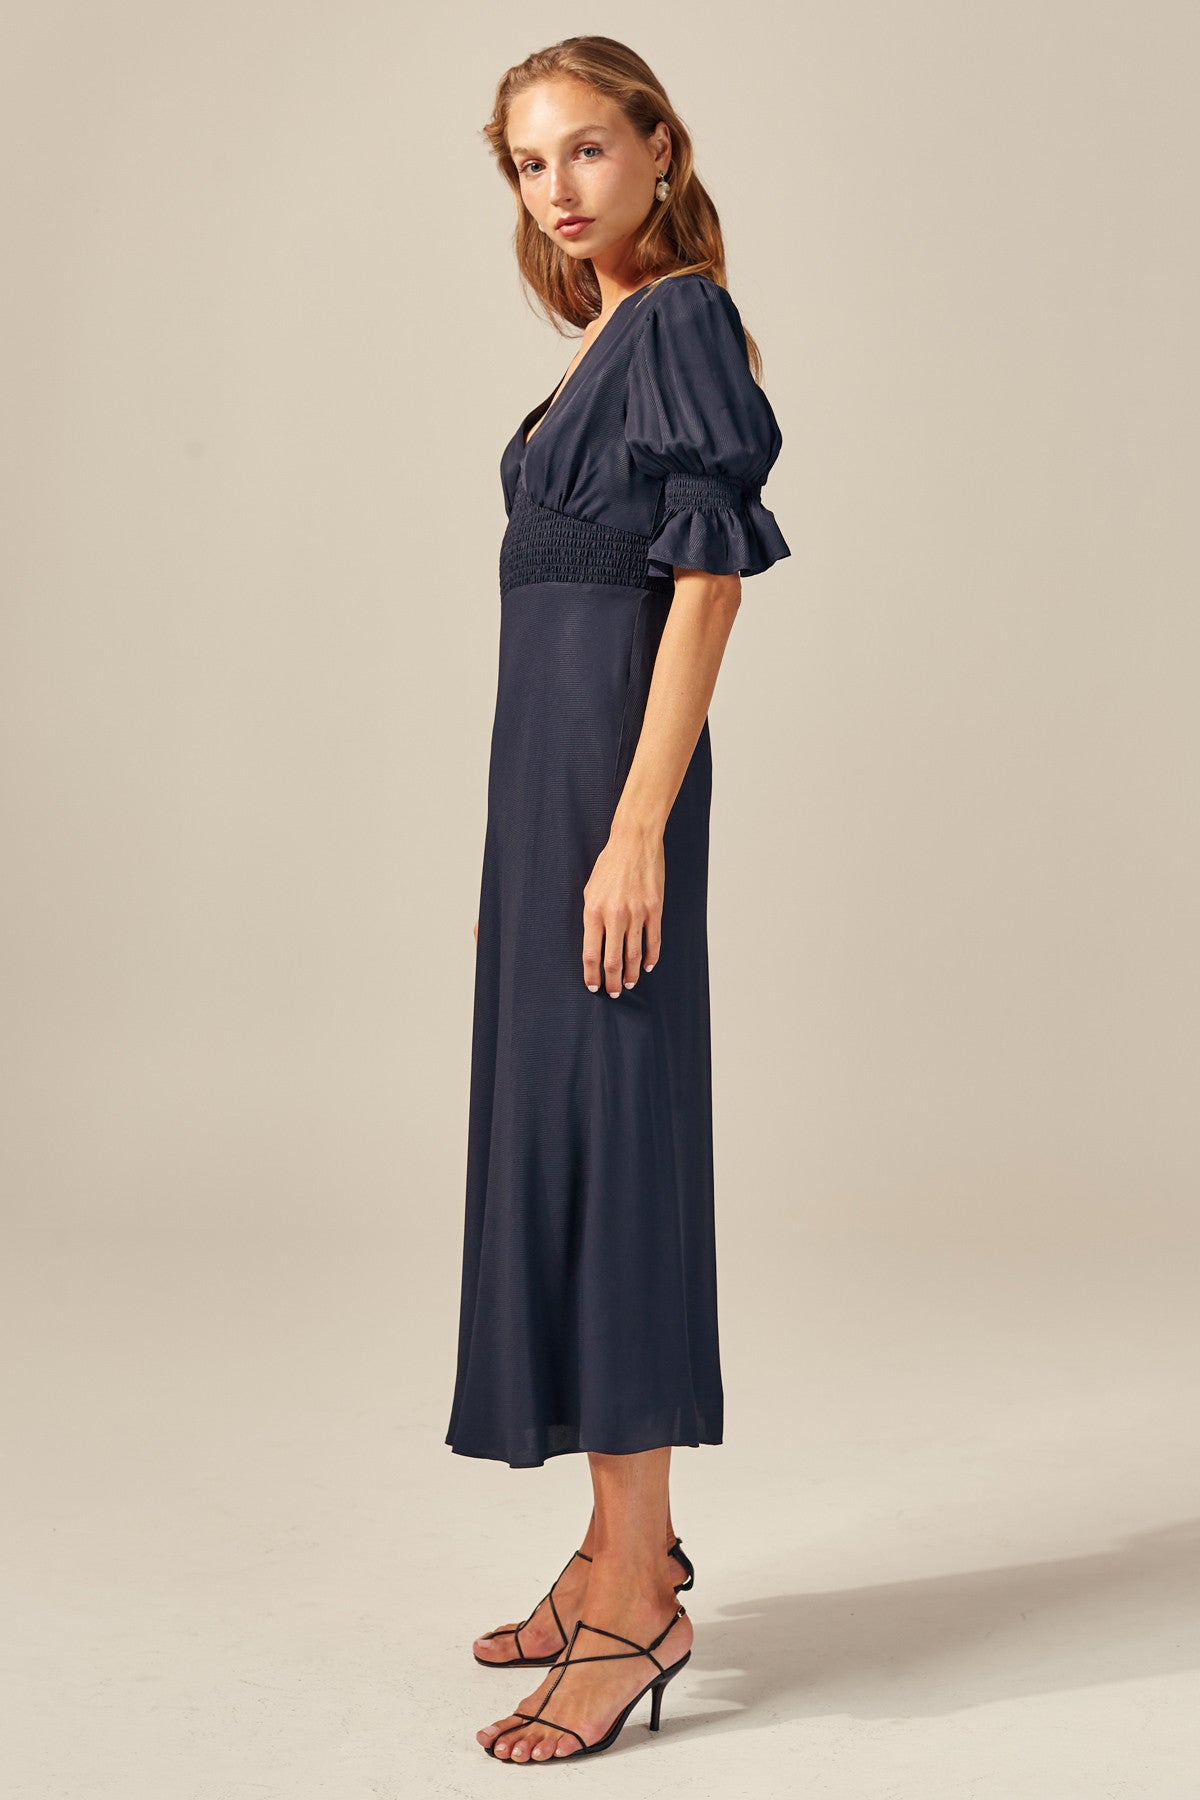 PUBLICITY SHORT SLEEVE DRESS navy